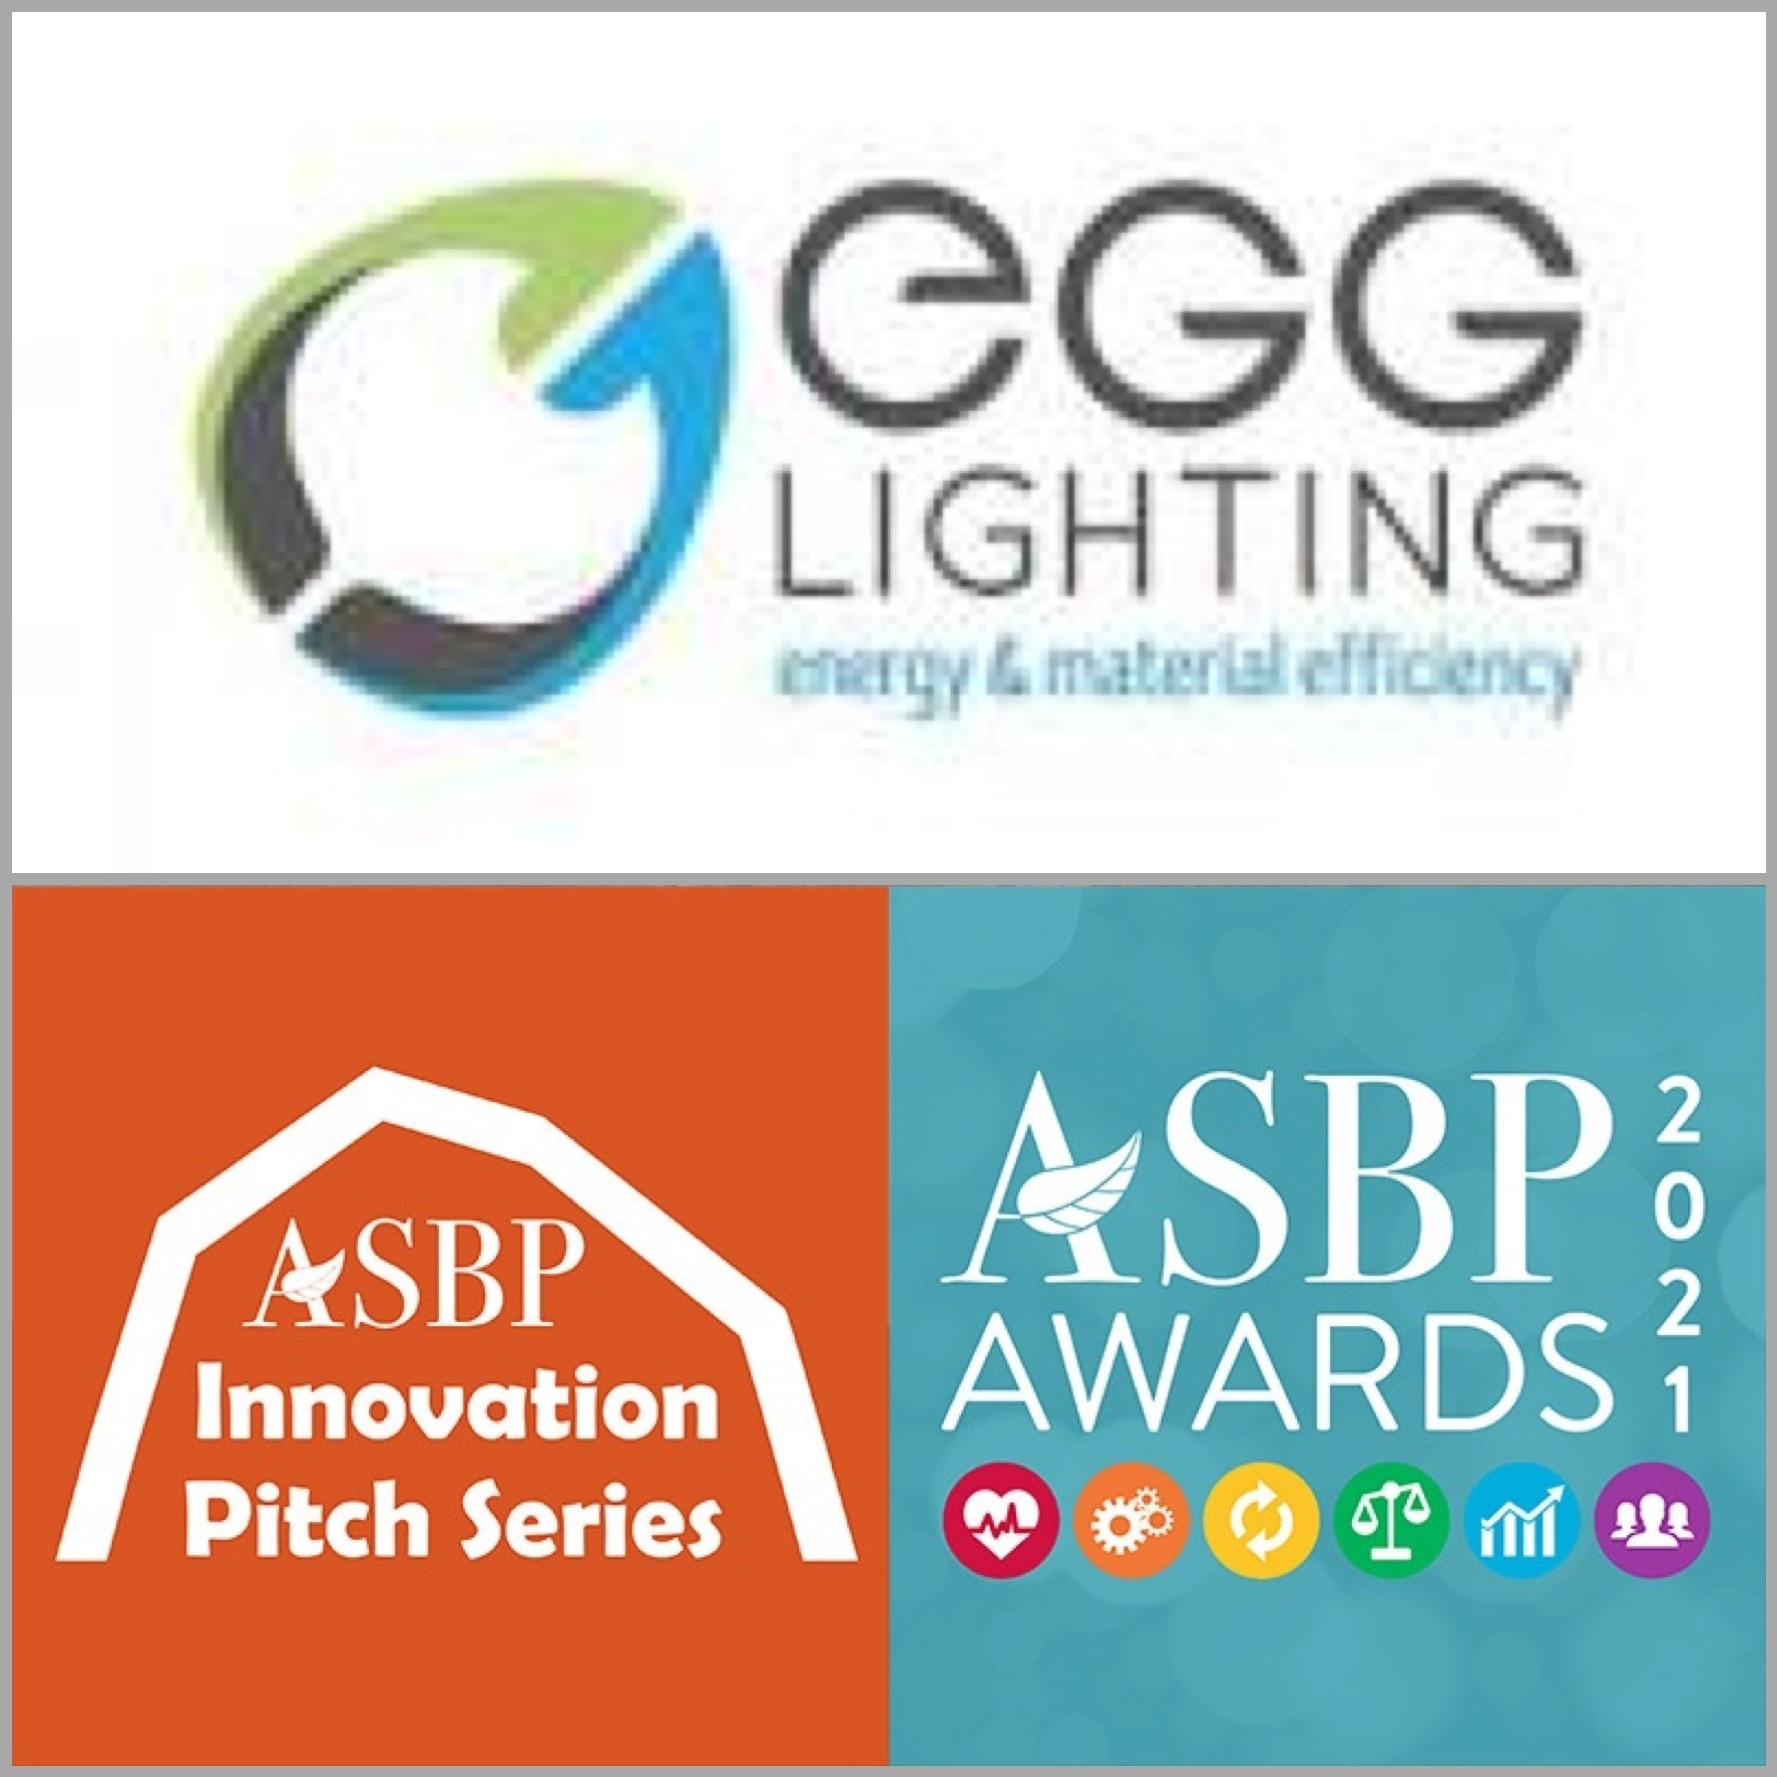 EGG Lighting shortlisted for both ASBP Awards and ASBP Innovation Pitch Series